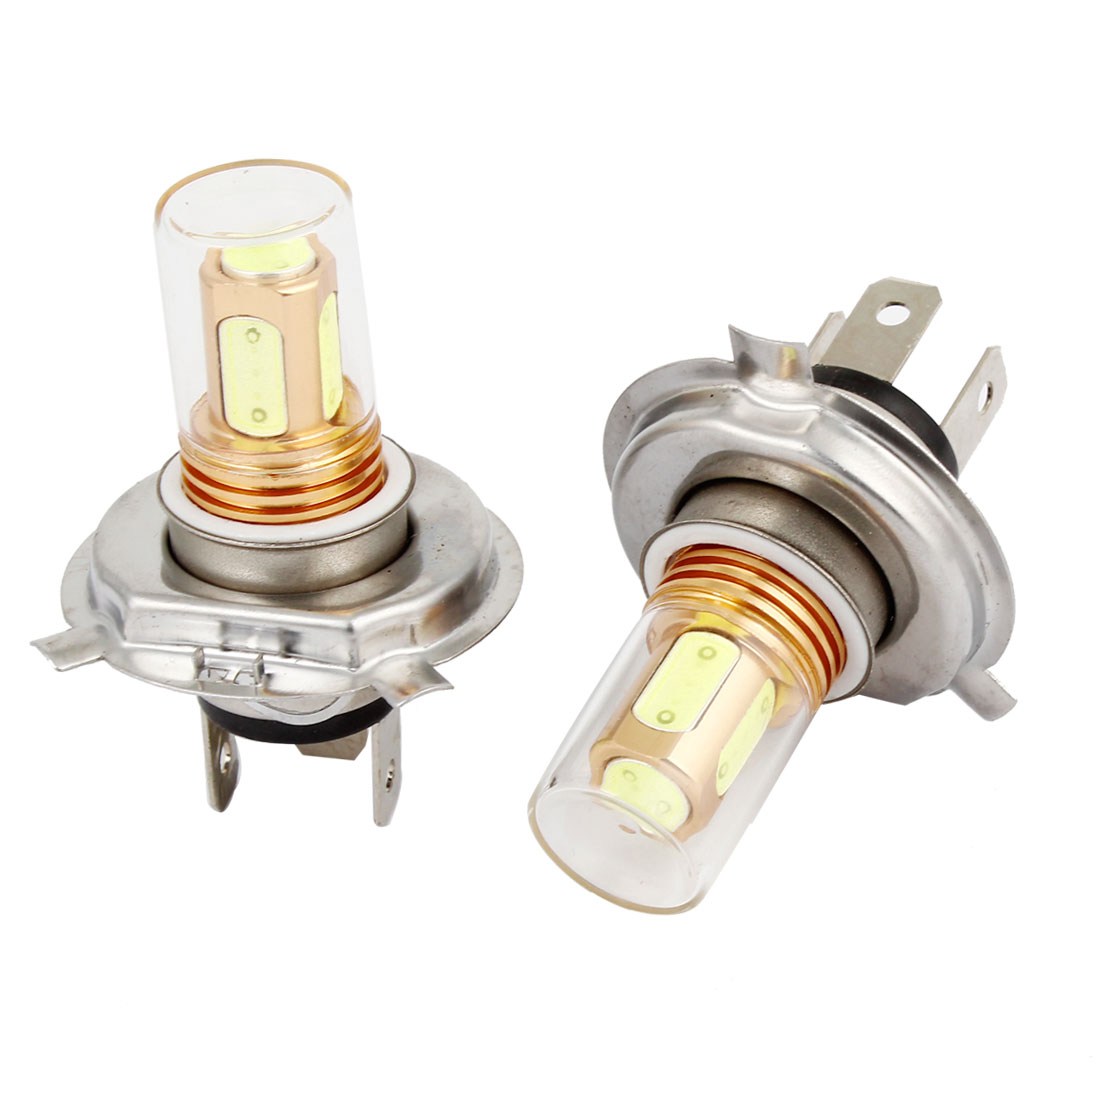 2 Pcs Car 5 SMD LED Glass Lens H4 DRL Daytime Driving Light White 7.5W 12V